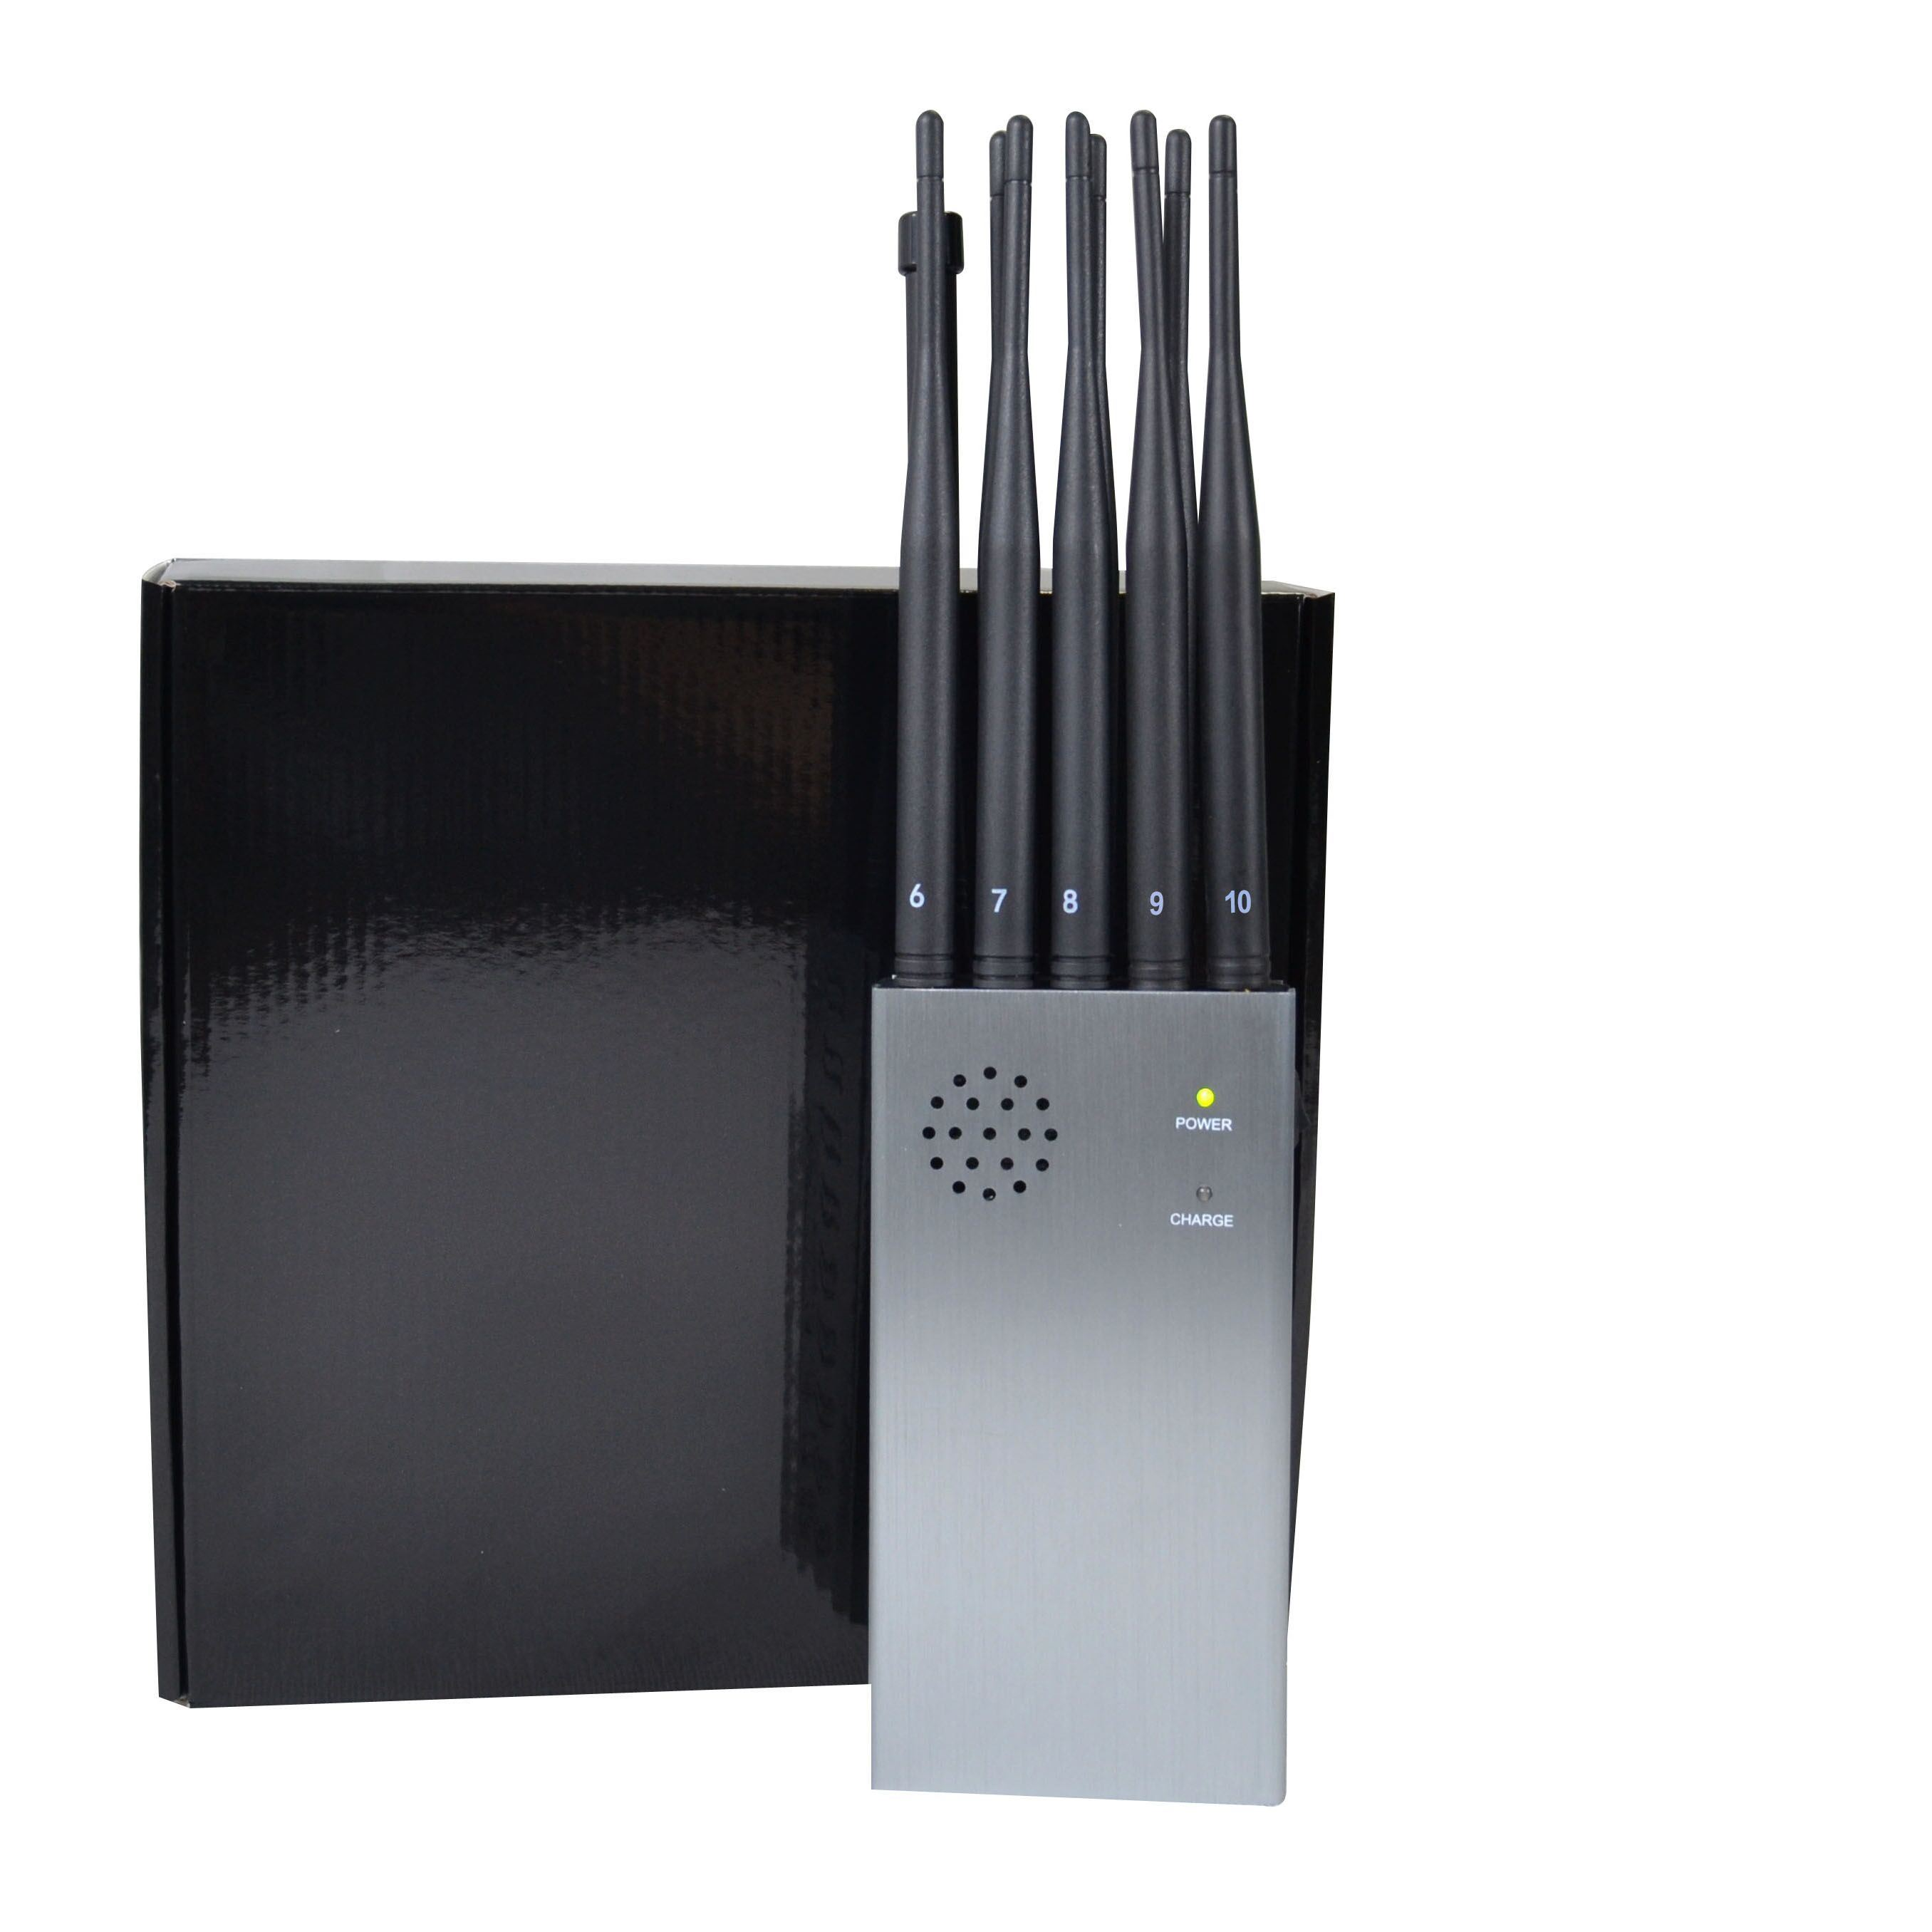 phone jammer fcc broadband - China Handled Portable Jammer with 10 Antennas Newest Model Updated Version with 8000mA - China 8000mA Battery Jammer, Large Volume Power Signal Blocker